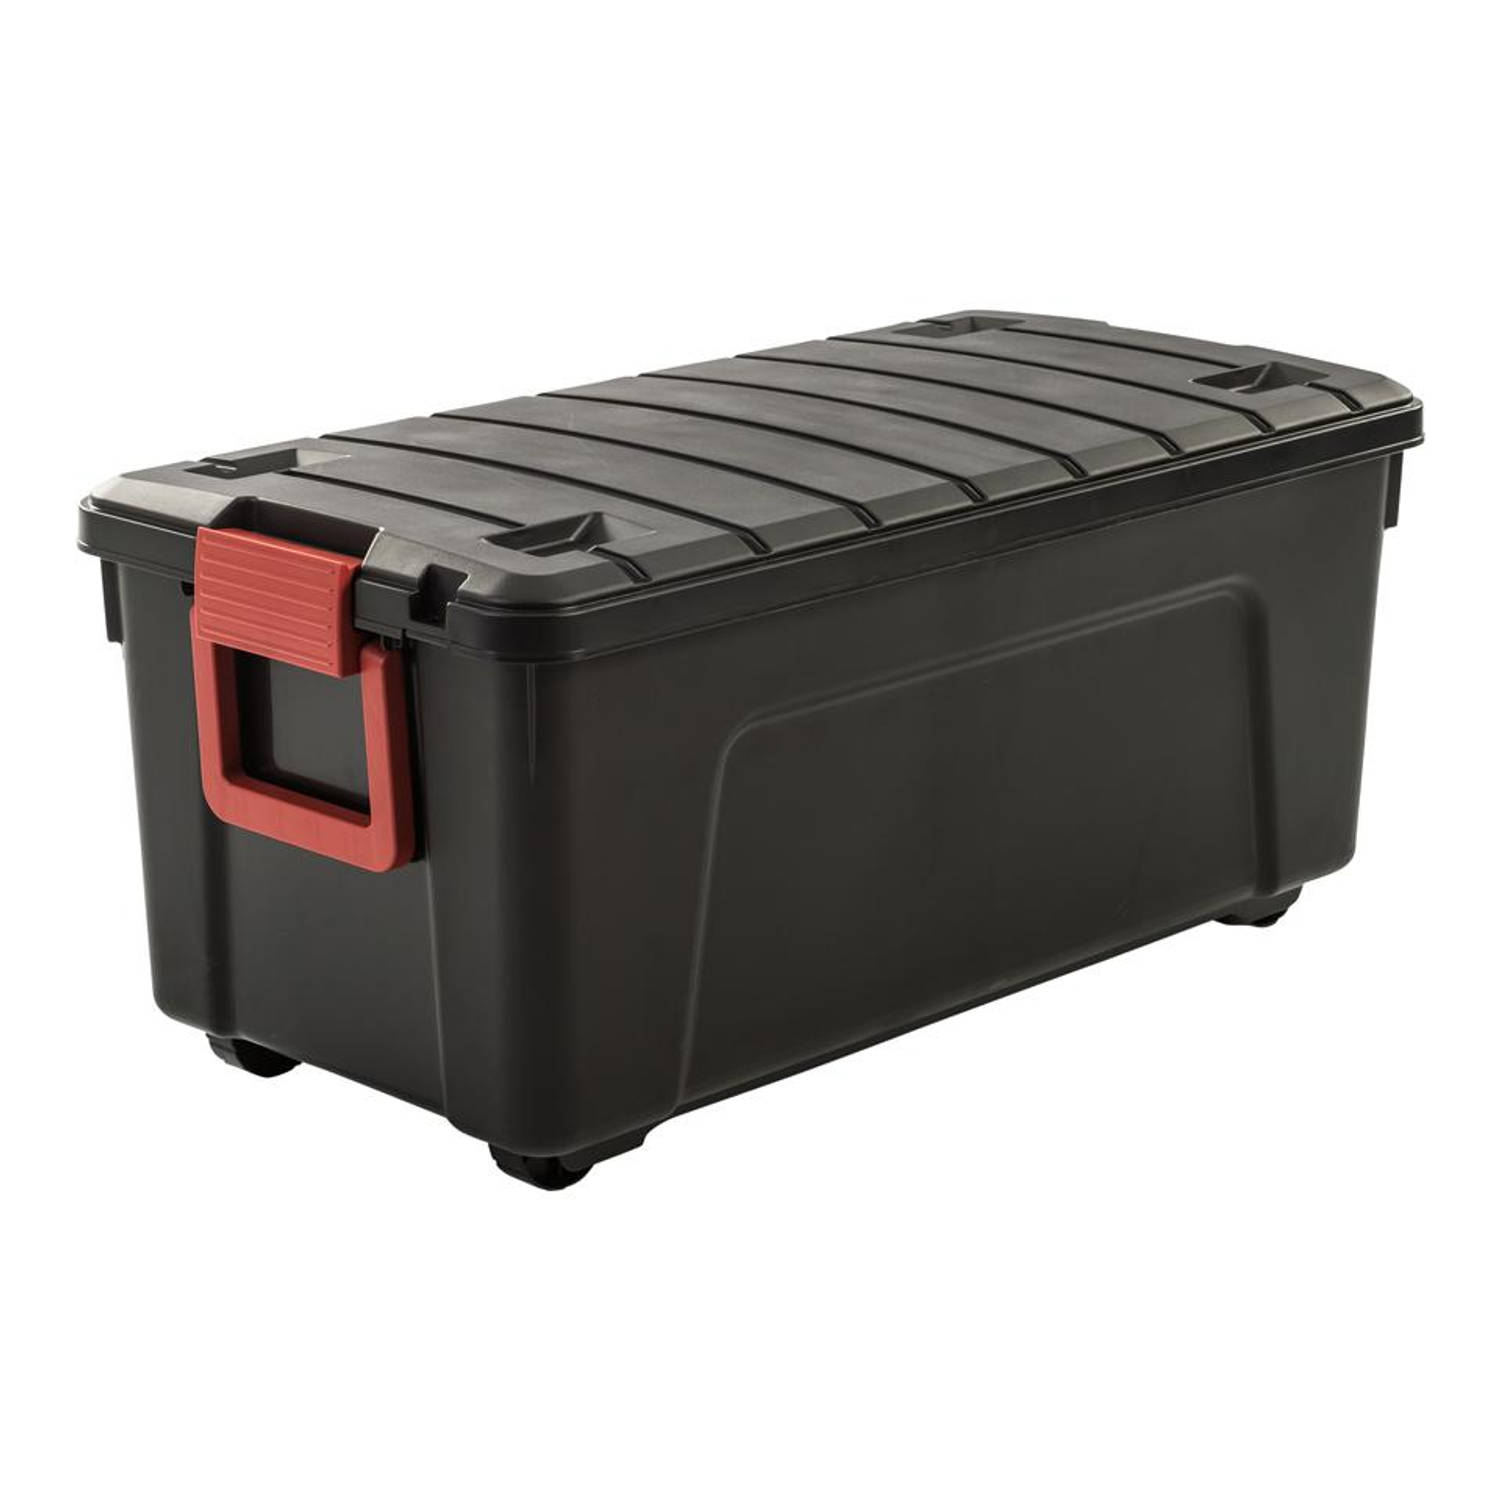 Iris Store It All opbergbox - 110 liter - zwart/rood